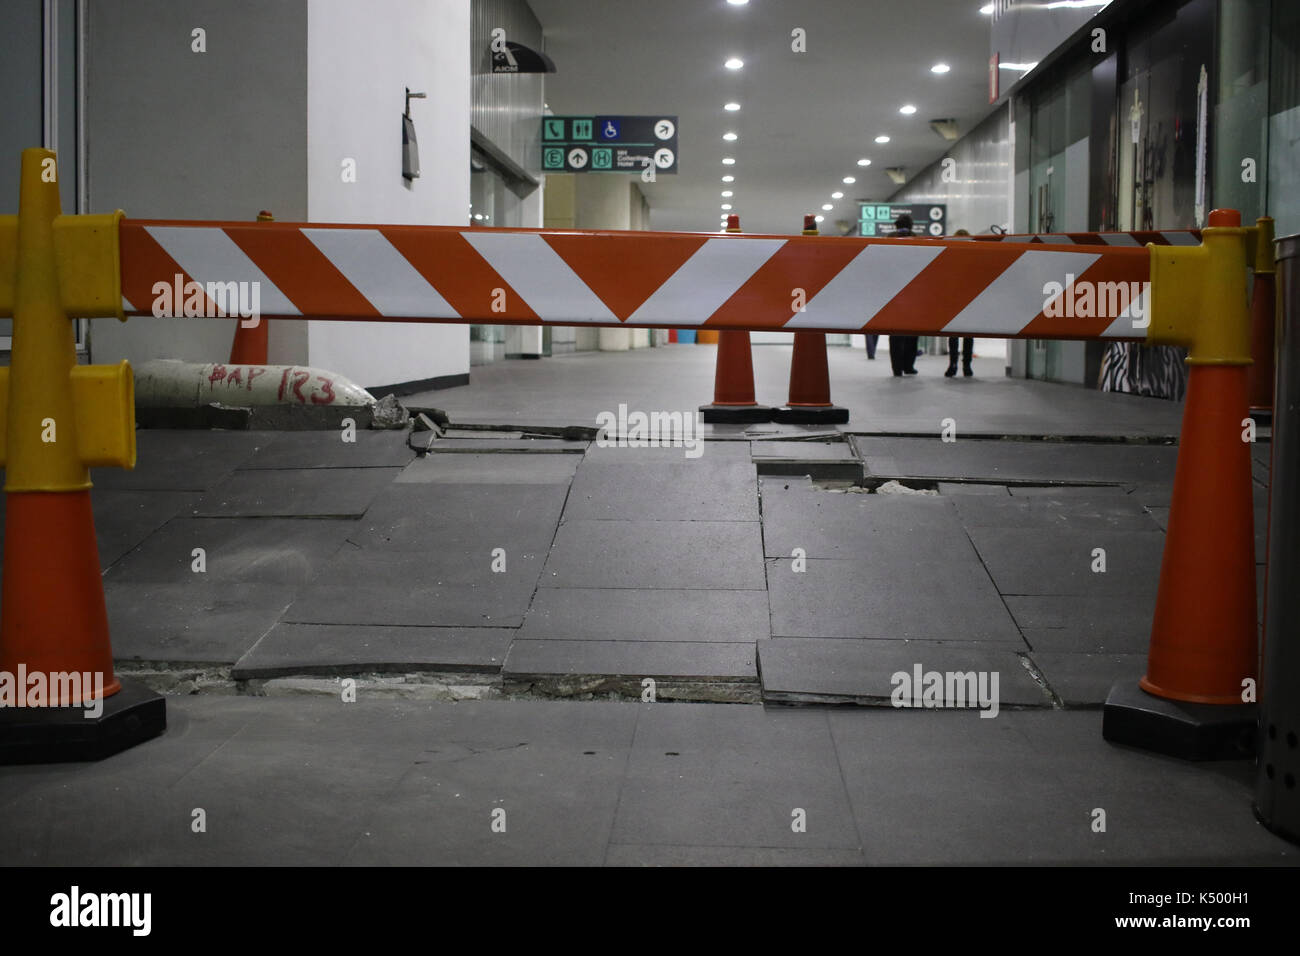 Mexico City. 8th Sep, 2017. Photo taken on Sept. 8, 2017 shows a cracked floor at the Mexico City International Airport after an earthquake jolted Mexico City, capital of Mexico. A powerful earthquake measuring 8.0 on the Richter scale struck off Mexico's southern coast on late Thursday, the United States Geological Survey (USGS) said. Credit: Francisco Canedo/Xinhua/Alamy Live News - Stock Image